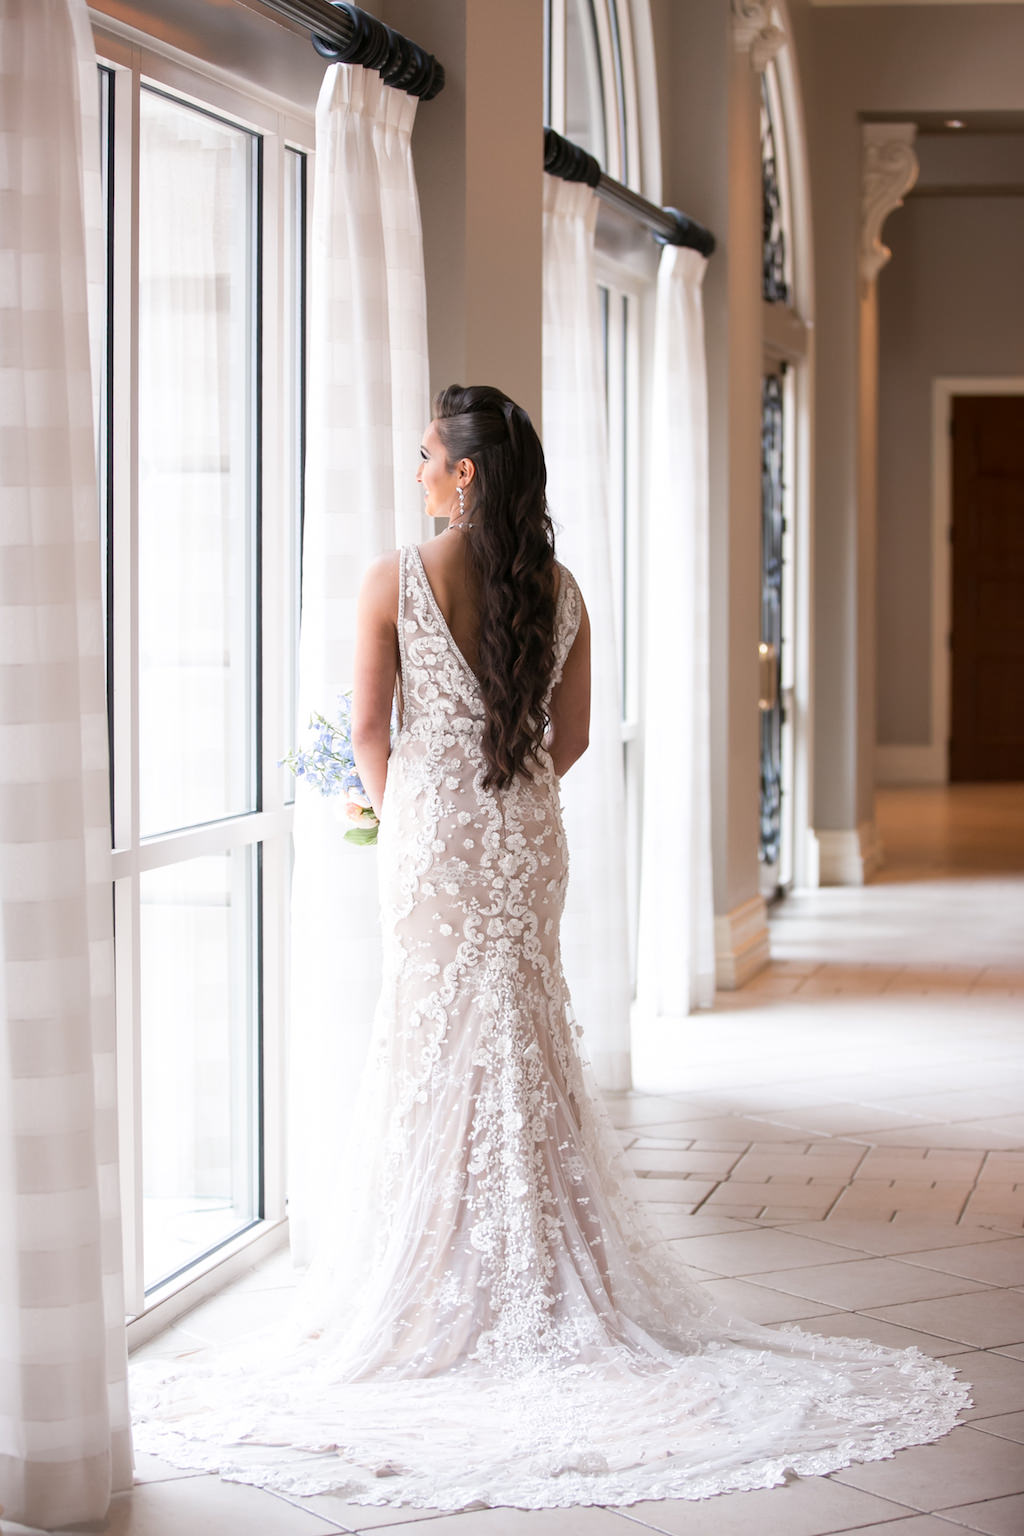 Tampa Bay Bride Wedding Portrait in Lace and Illusions V Shaped Open Back and Tank Top Straps Wedding Dress | Tampa Bay Photographer Carrie Wildes Photography | Hair and Makeup Destiny and Light Hair and Makeup Group | Wedding Dress Nikkk's Glitz and Glam Boutique | Wedding Venue Renaissance Tampa International Plaza